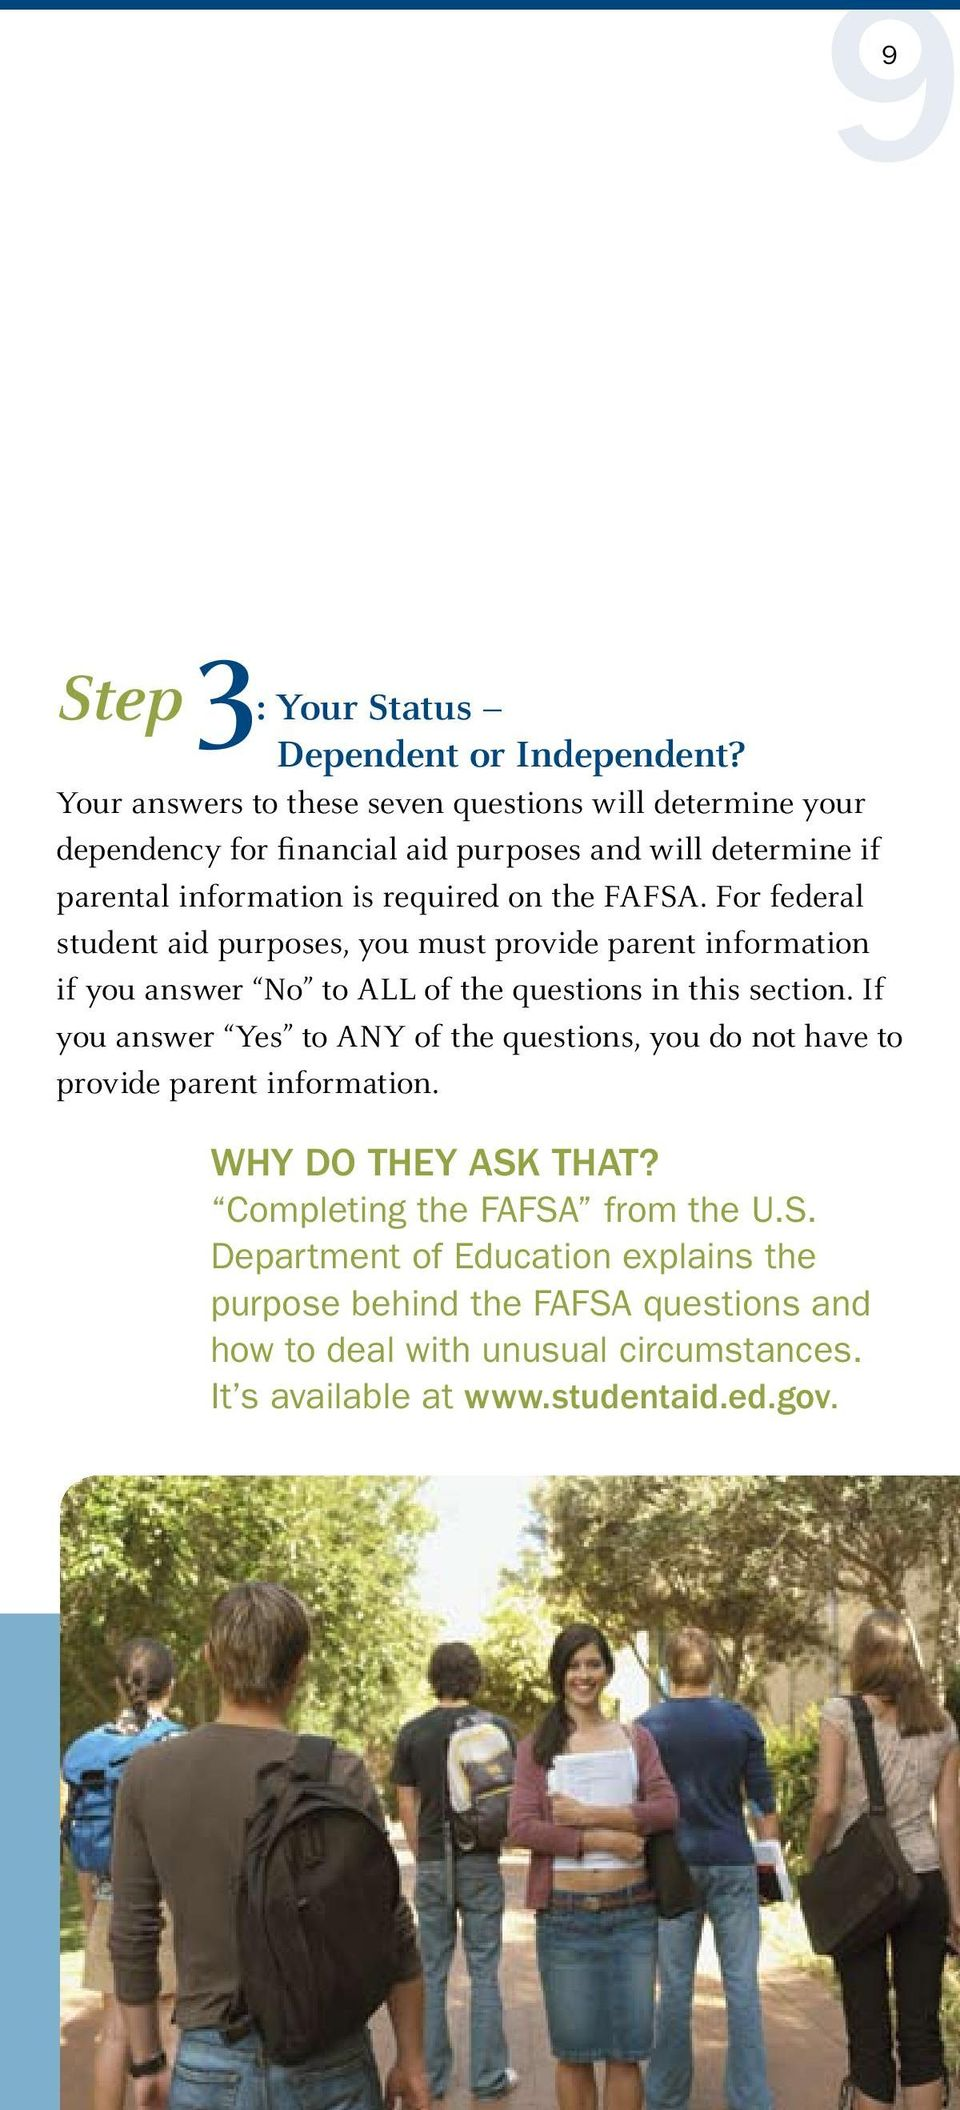 FAFSA. For federal student aid purposes, you must provide parent information if you answer No to ALL of the questions in this section.